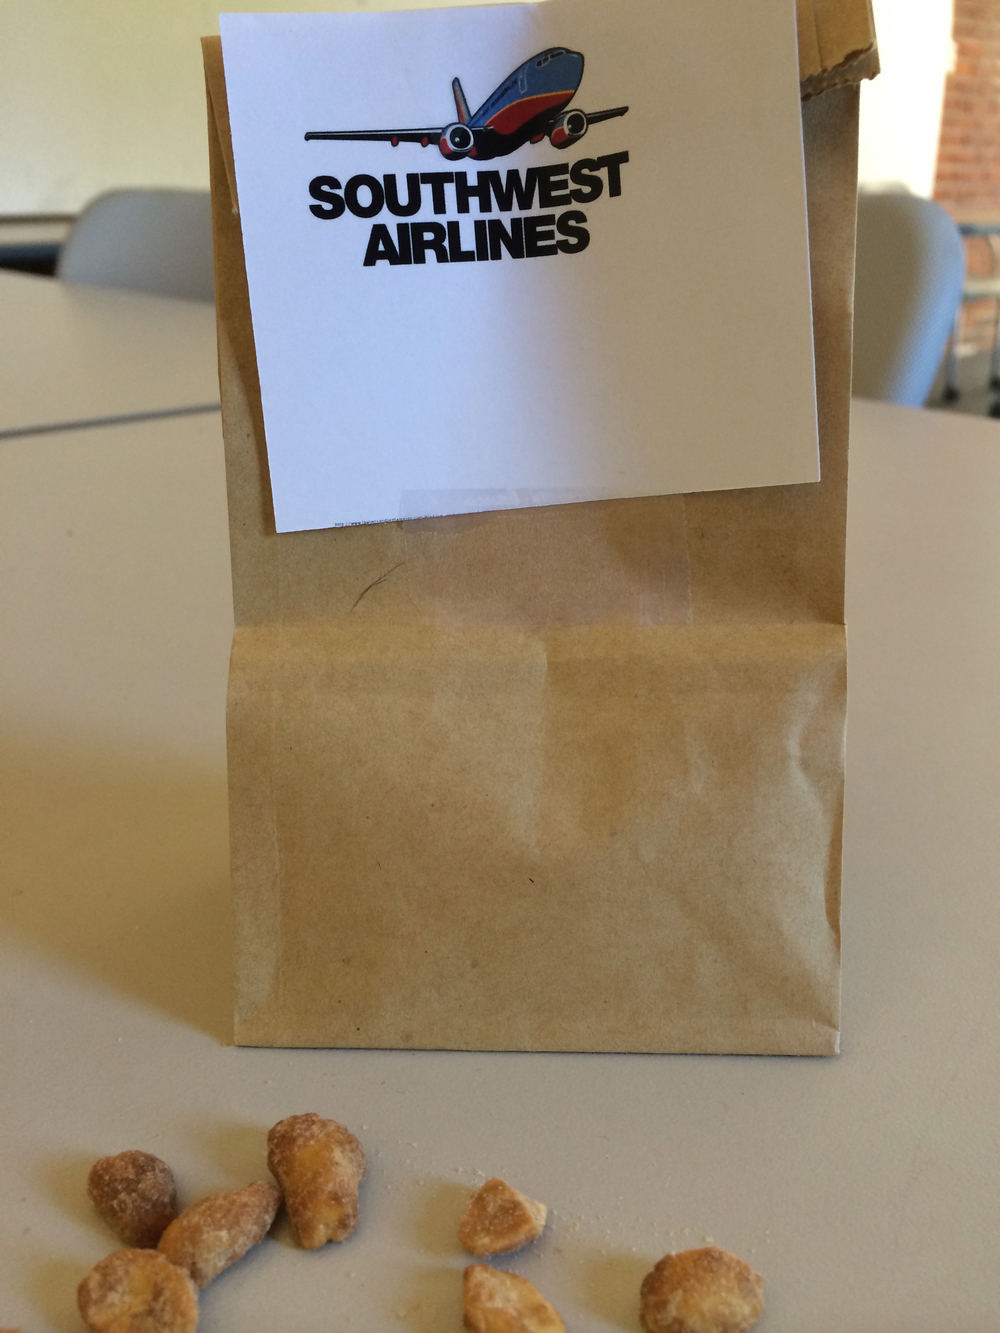 On brand, a small bag of honey roasted peanuts was provided to the judges to have some fun during the pitch.